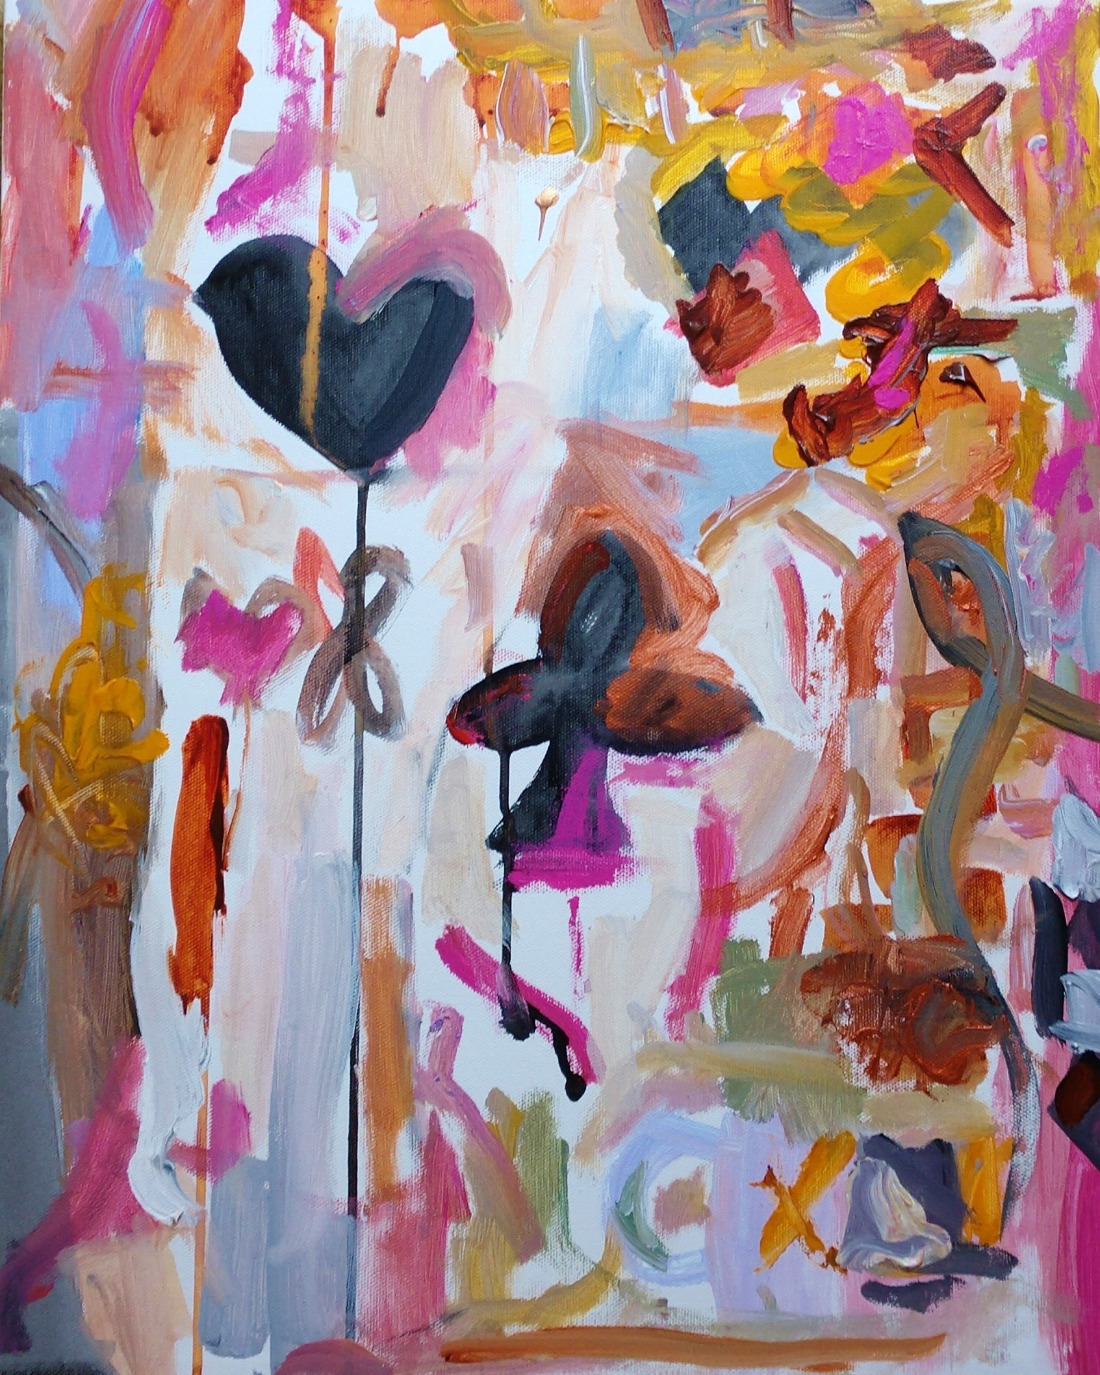 Jubilee fine art painting by Andrea Goldsmith